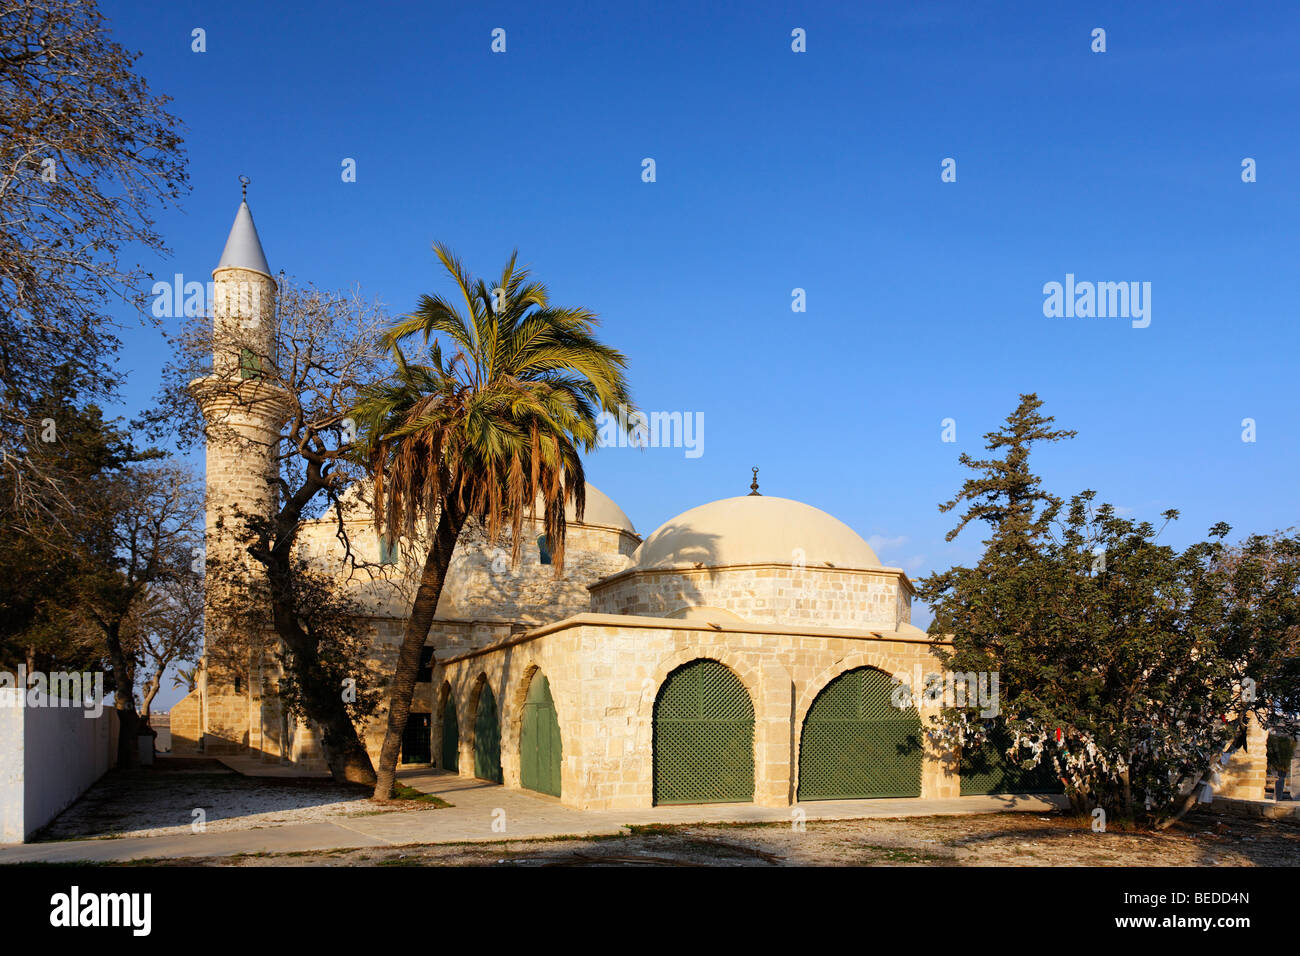 Hala Sultan Tekke Mosque, fourth most important islamic pilgrimage site, Larnaca, Cyprus, Asia Stock Photo